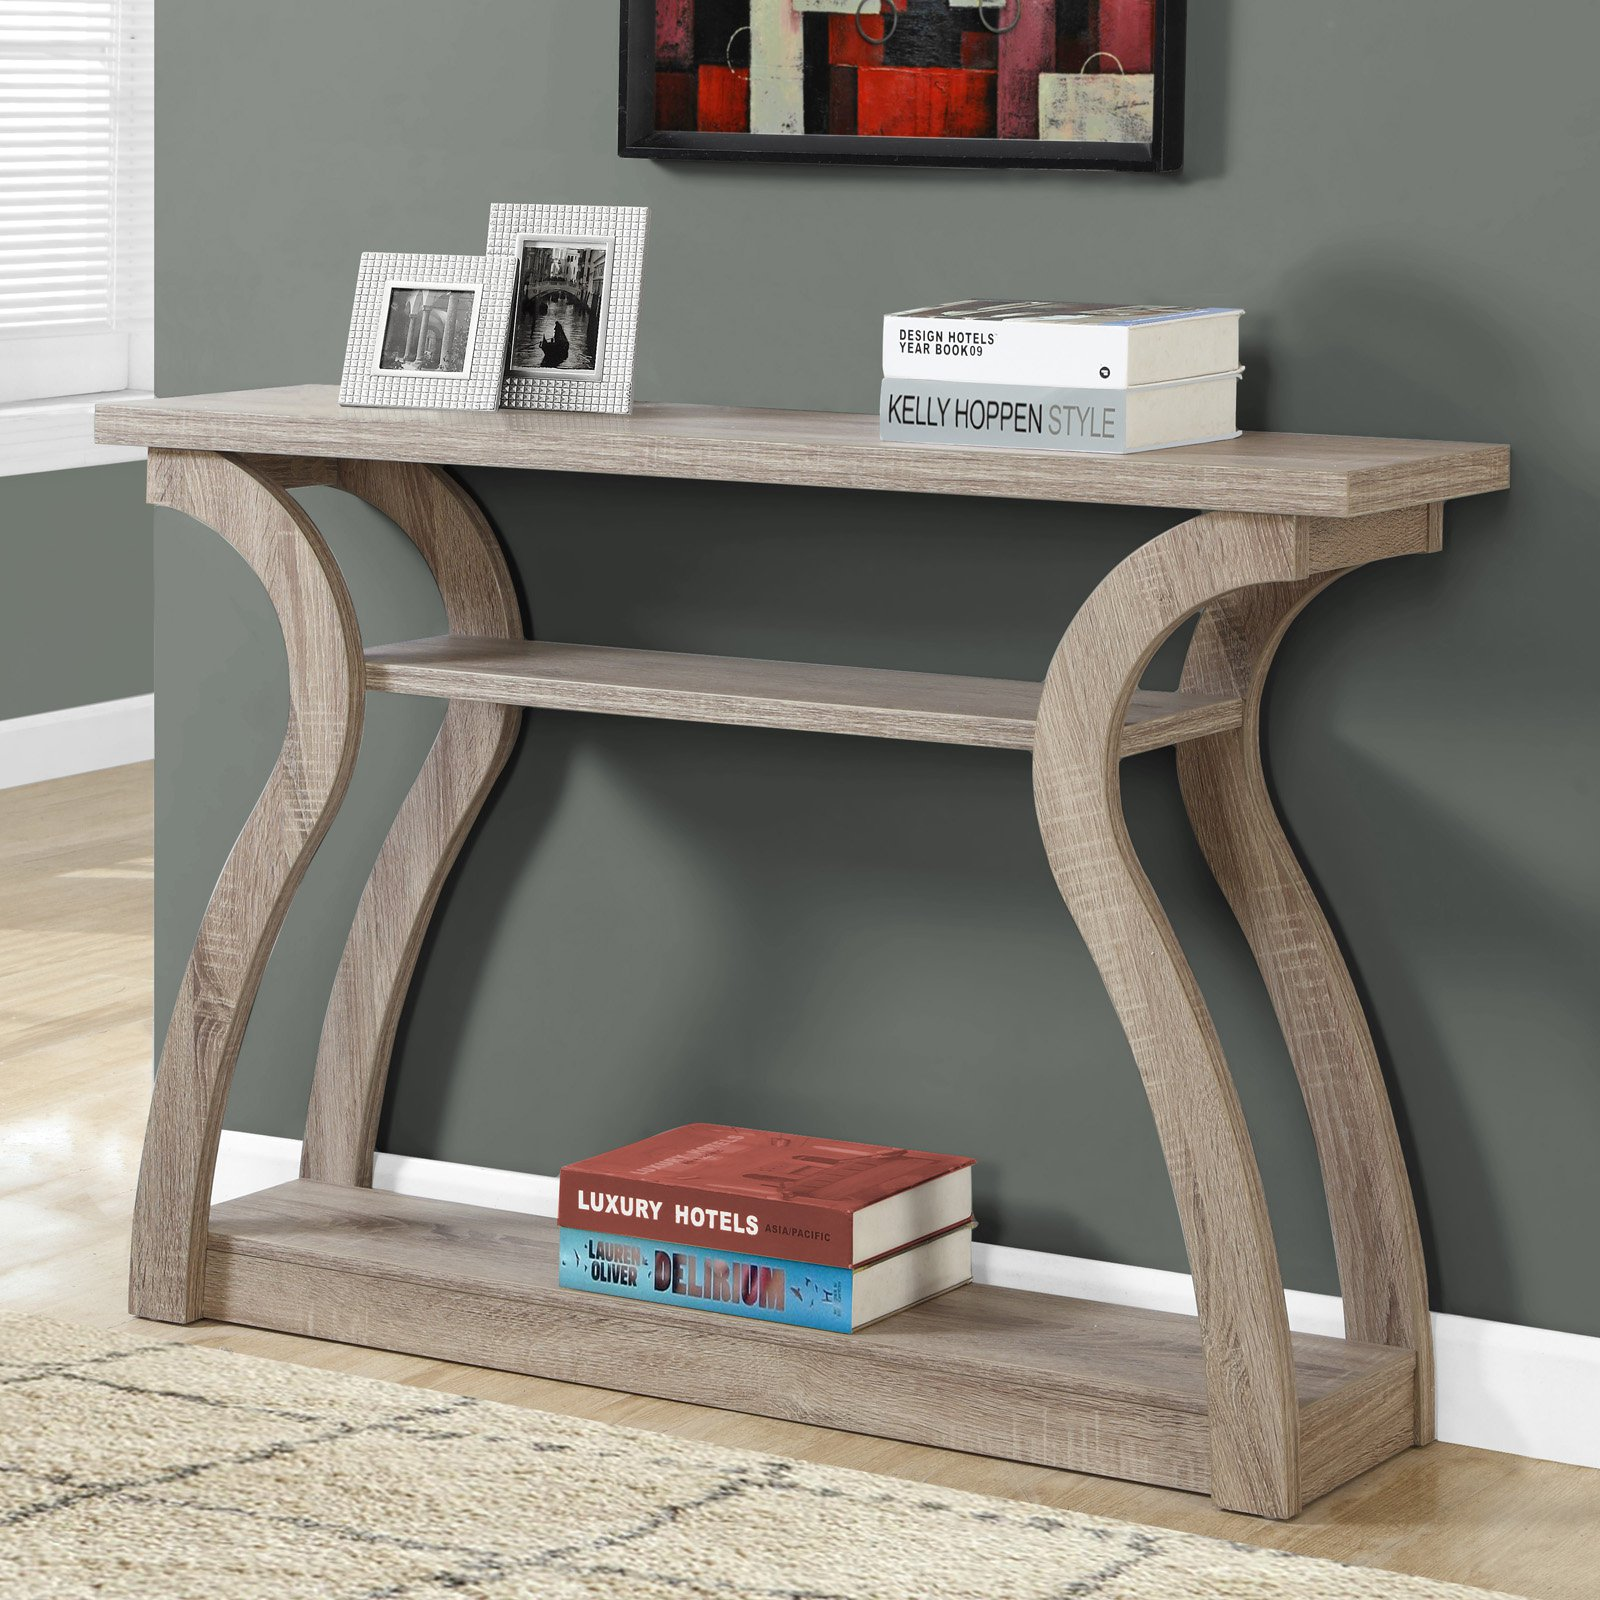 monarch accent table dark taupe hall console bar height legs wood live edge coffee dresser cabinet round hairpin inch furniture ikea small storage plant pedestal corner free fall